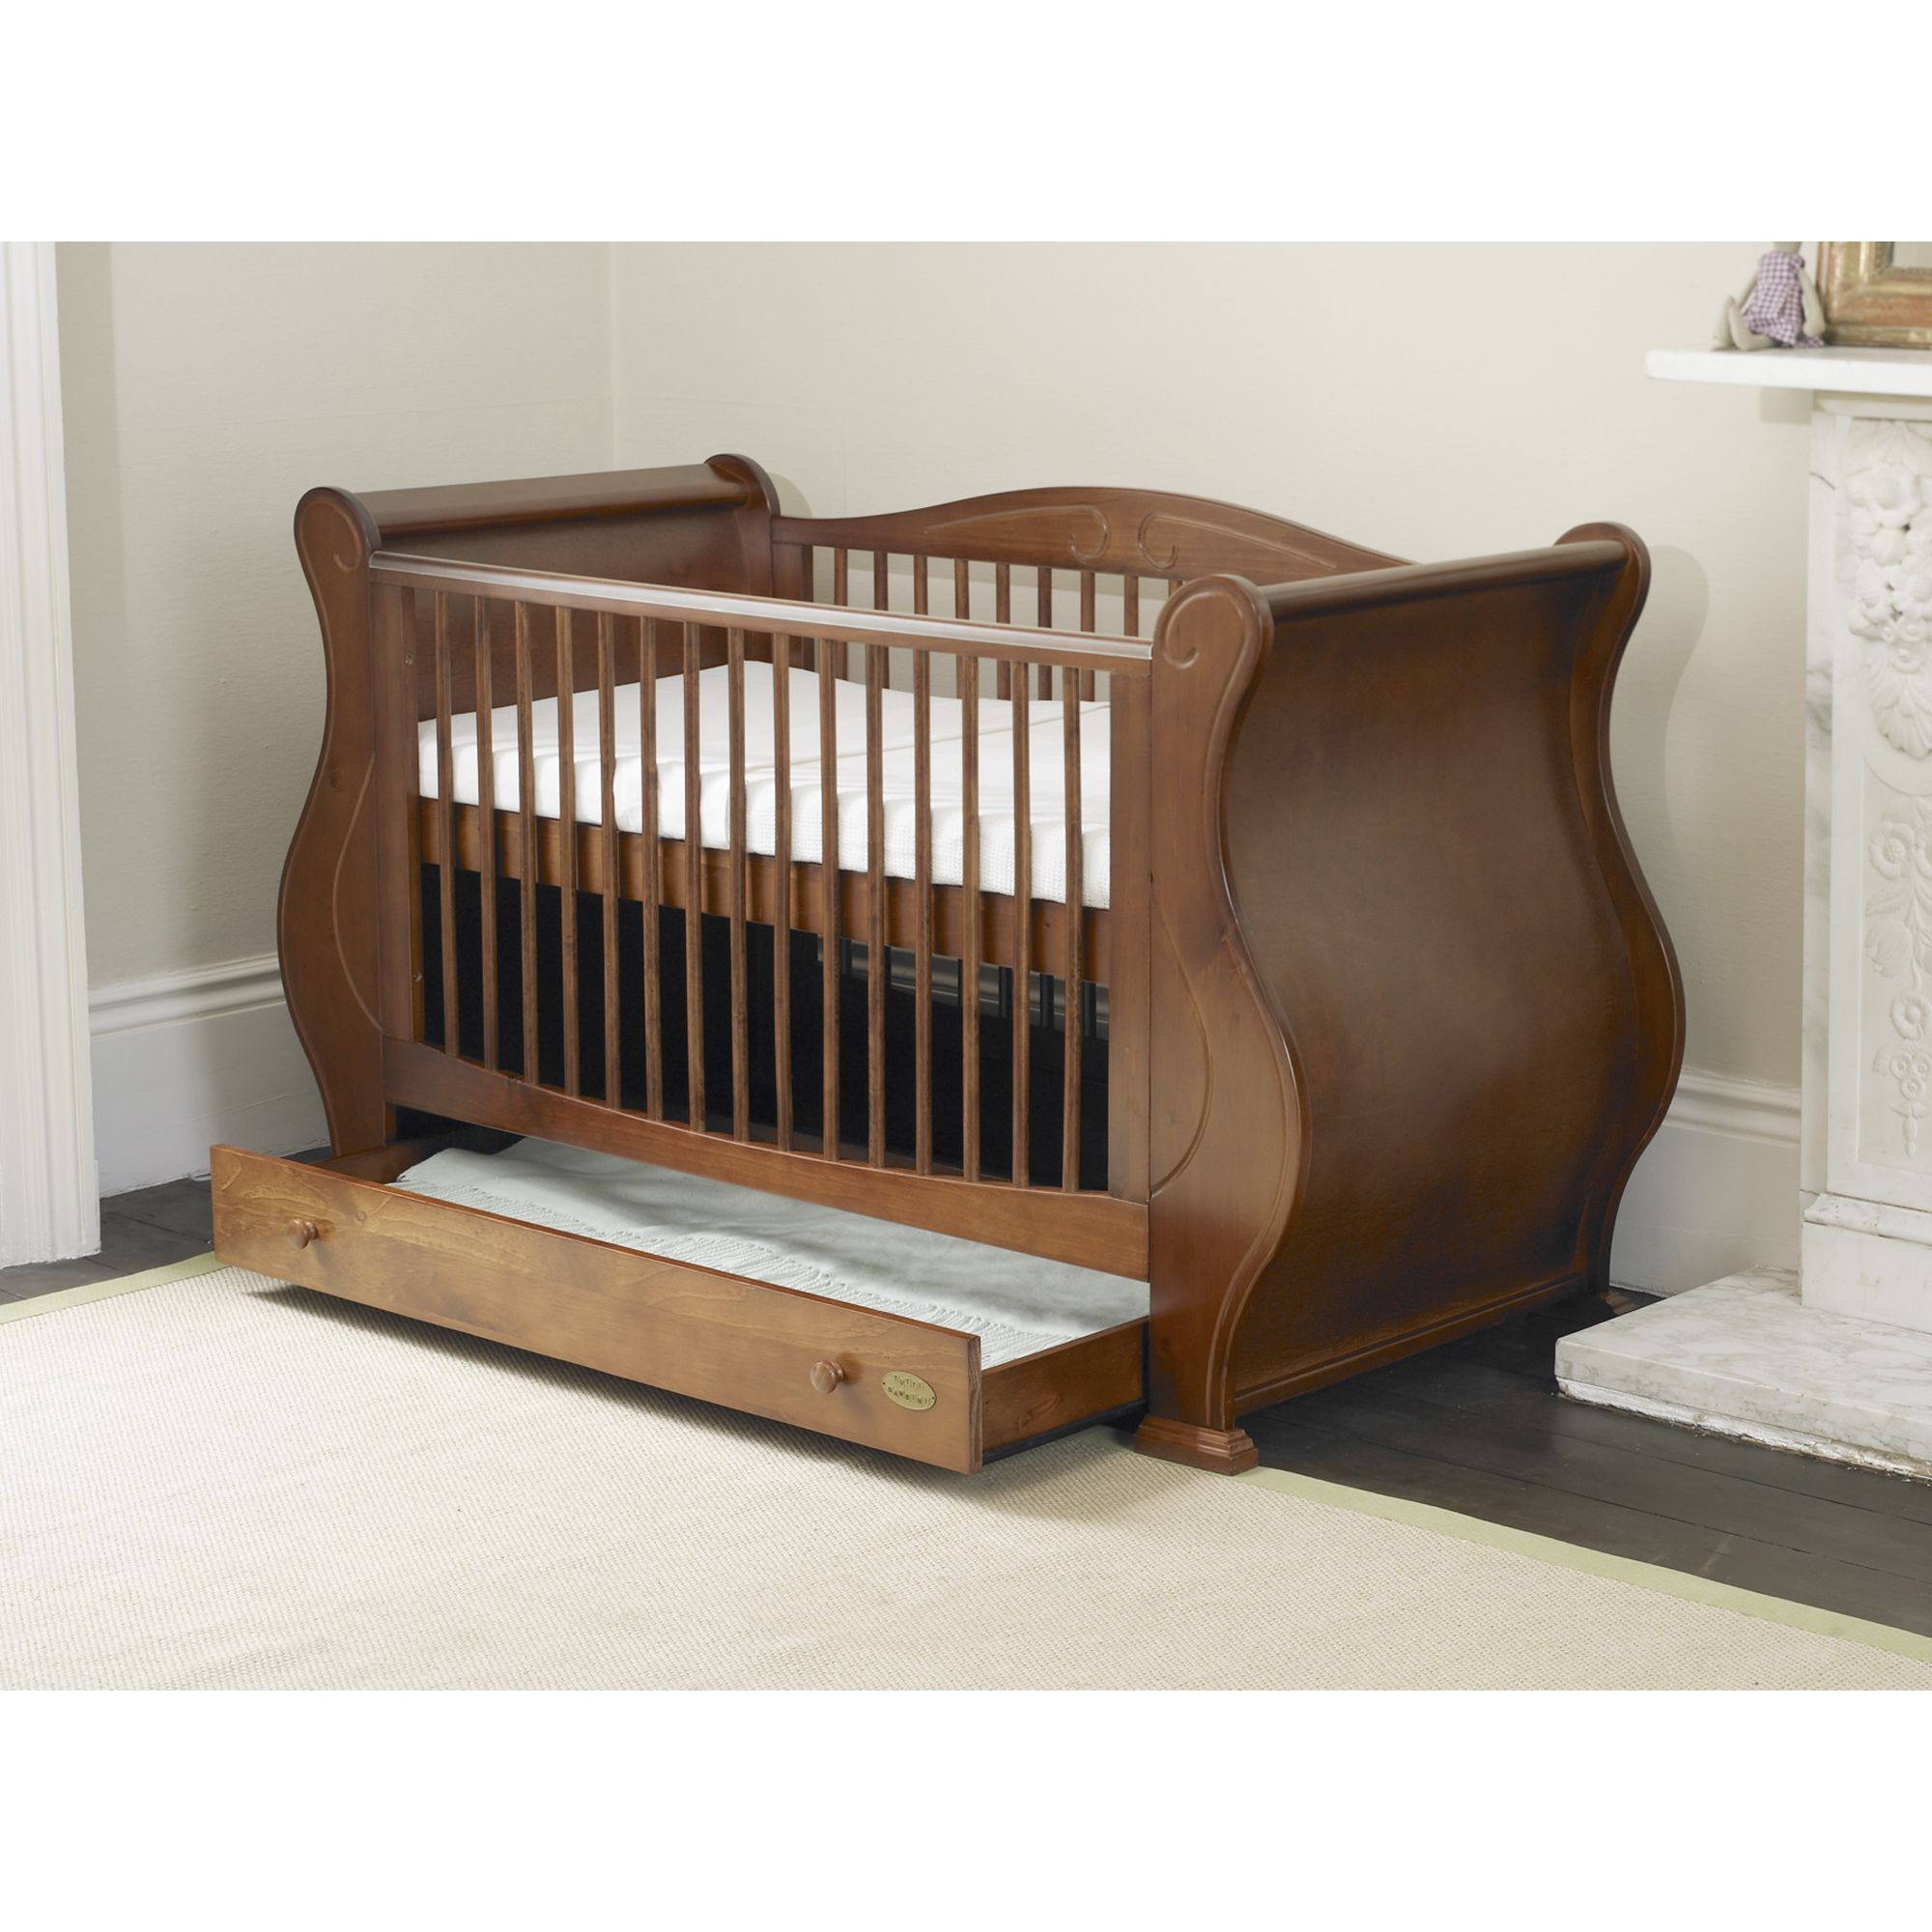 Tutti Bambini Louis Sleigh Cot Bed with Drawer in Walnut at Tesco Direct